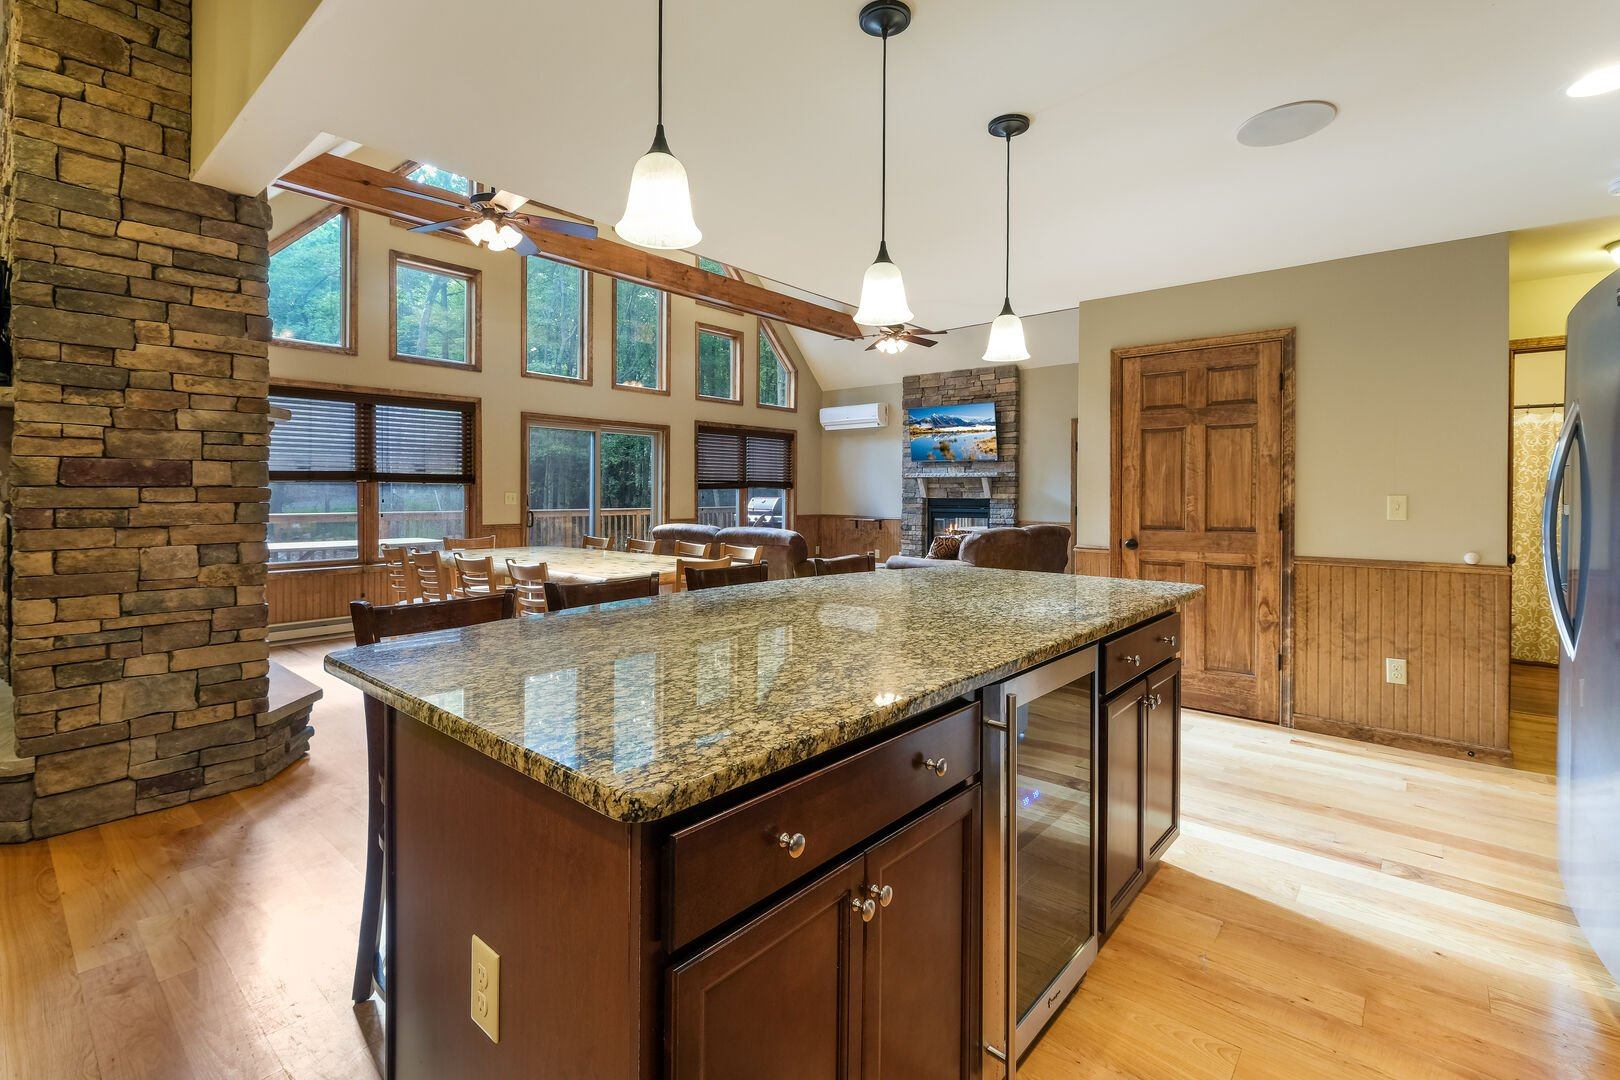 A picture of the granite counter-top kitchen island, facing the dining room and great room.